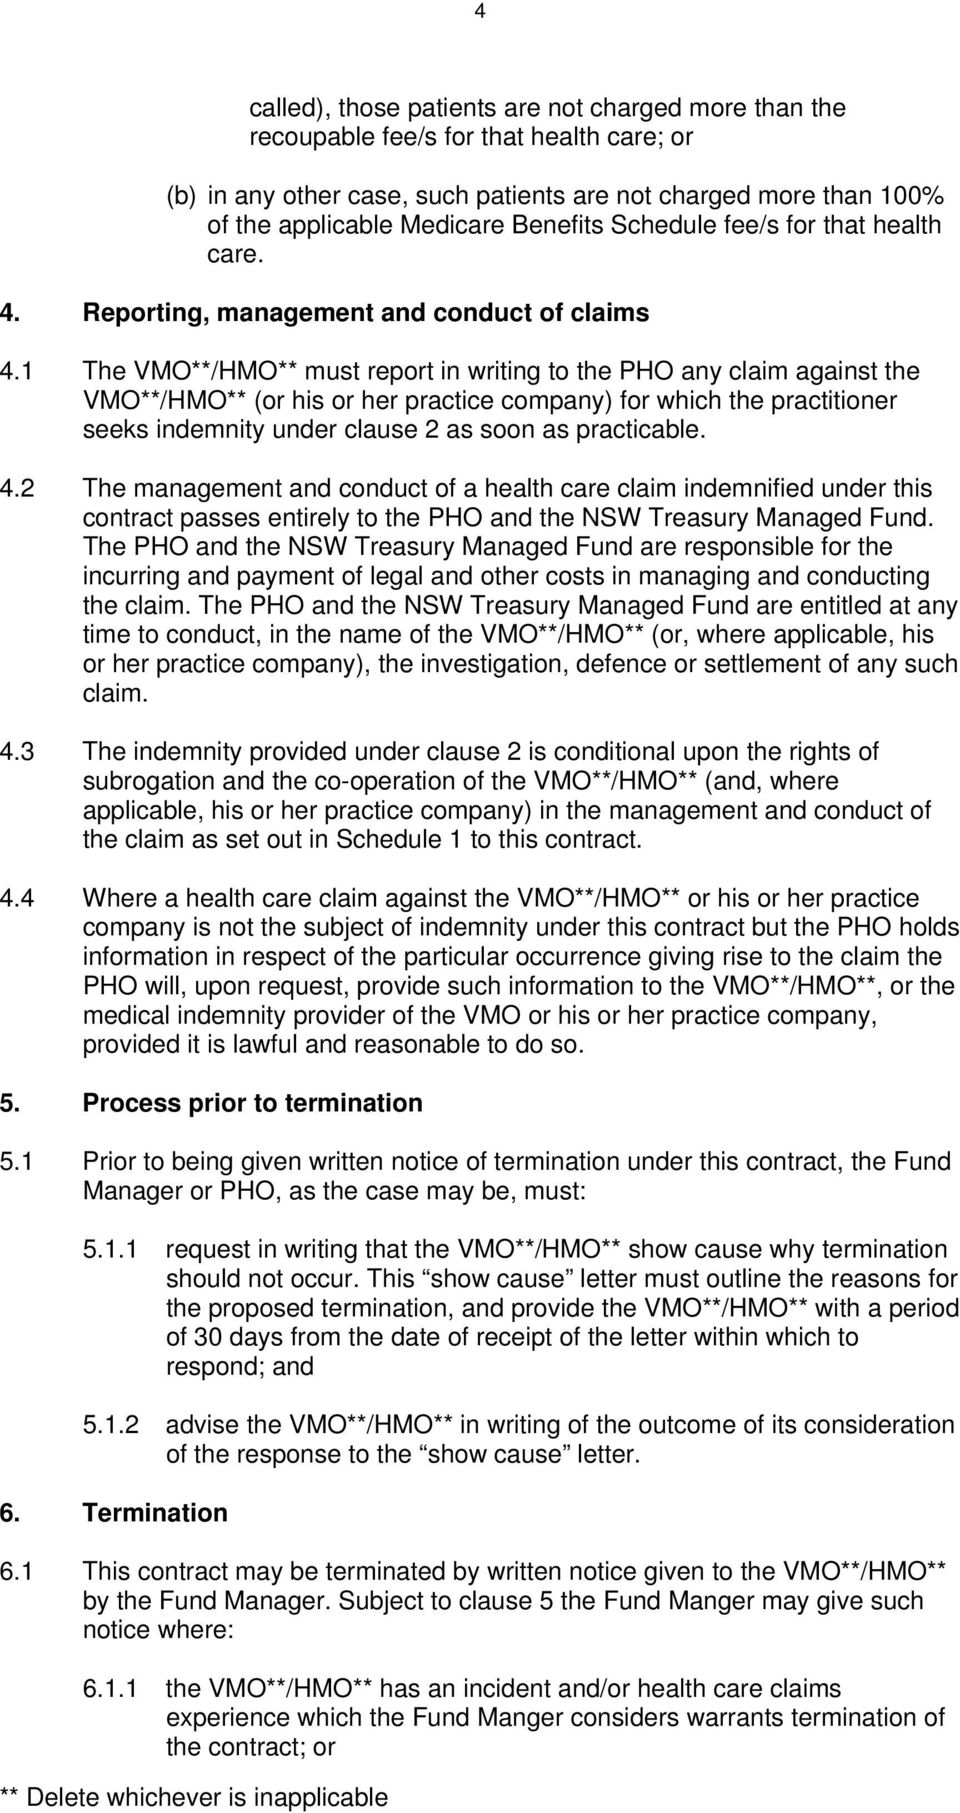 1 The VMO**/HMO** must report in writing to the PHO any claim against the VMO**/HMO** (or his or her practice company) for which the practitioner seeks indemnity under clause 2 as soon as practicable.